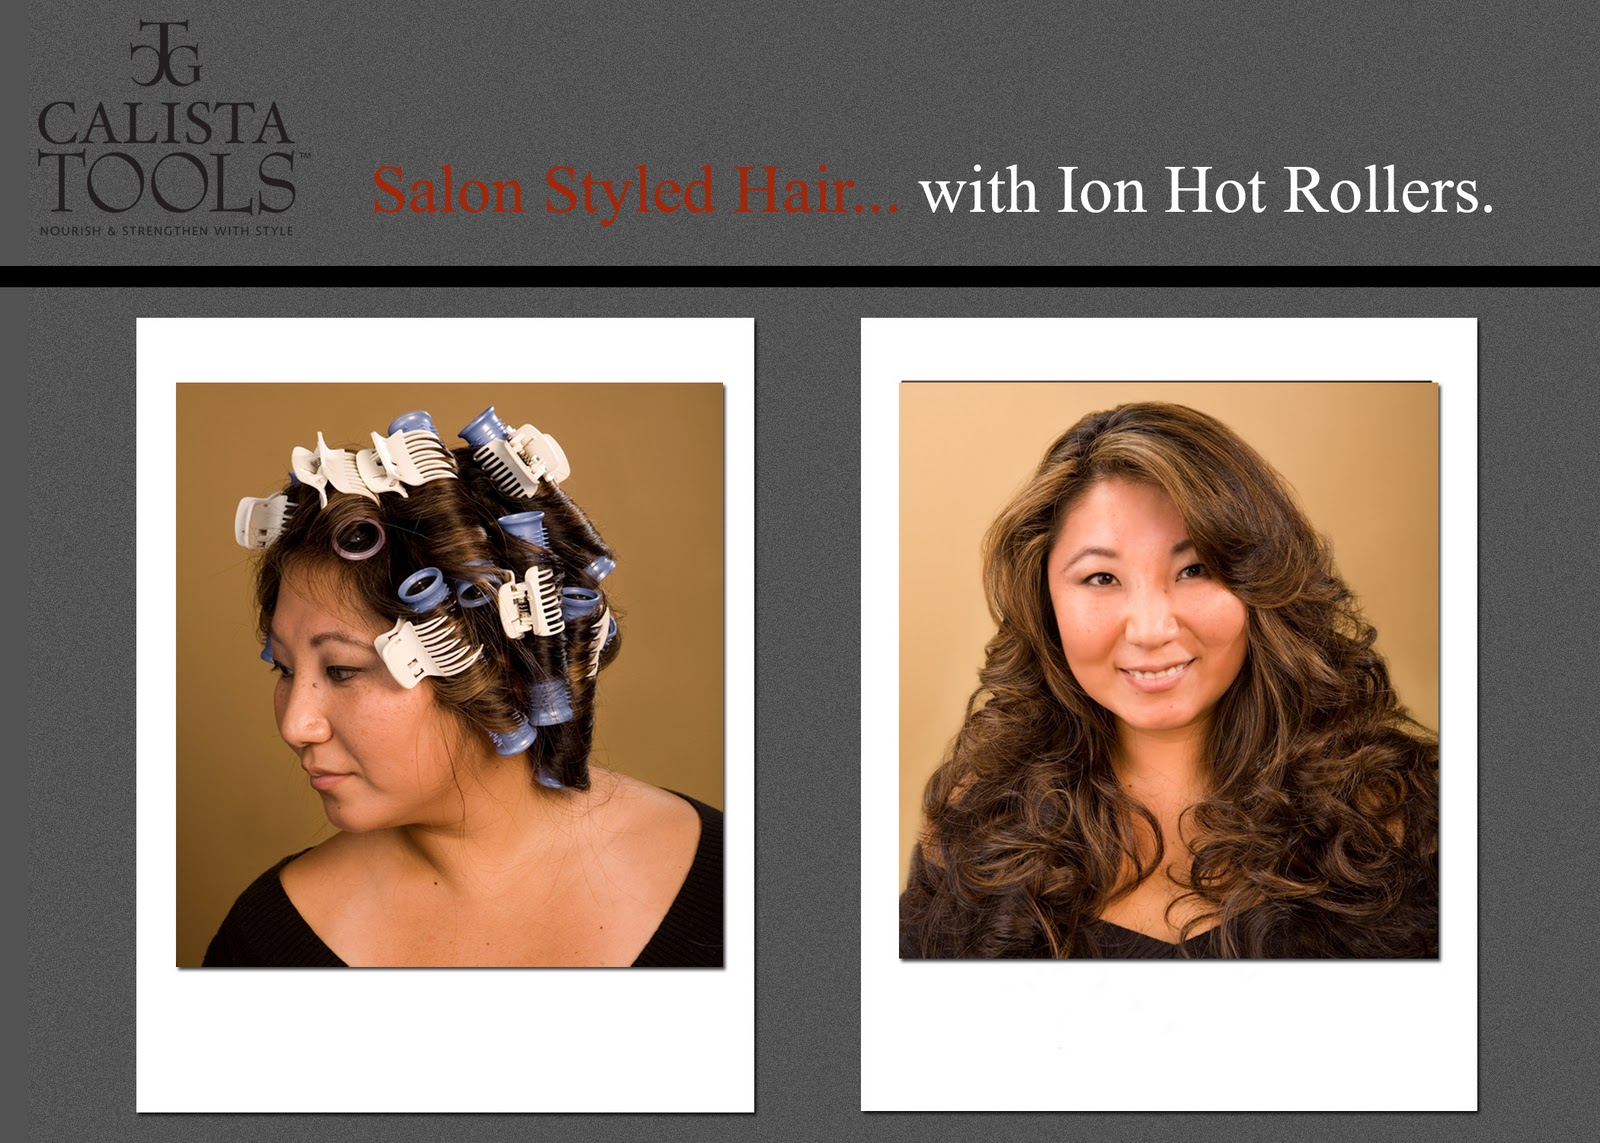 Rolling Out the Truth on Calista Tools ION Hot Rollers